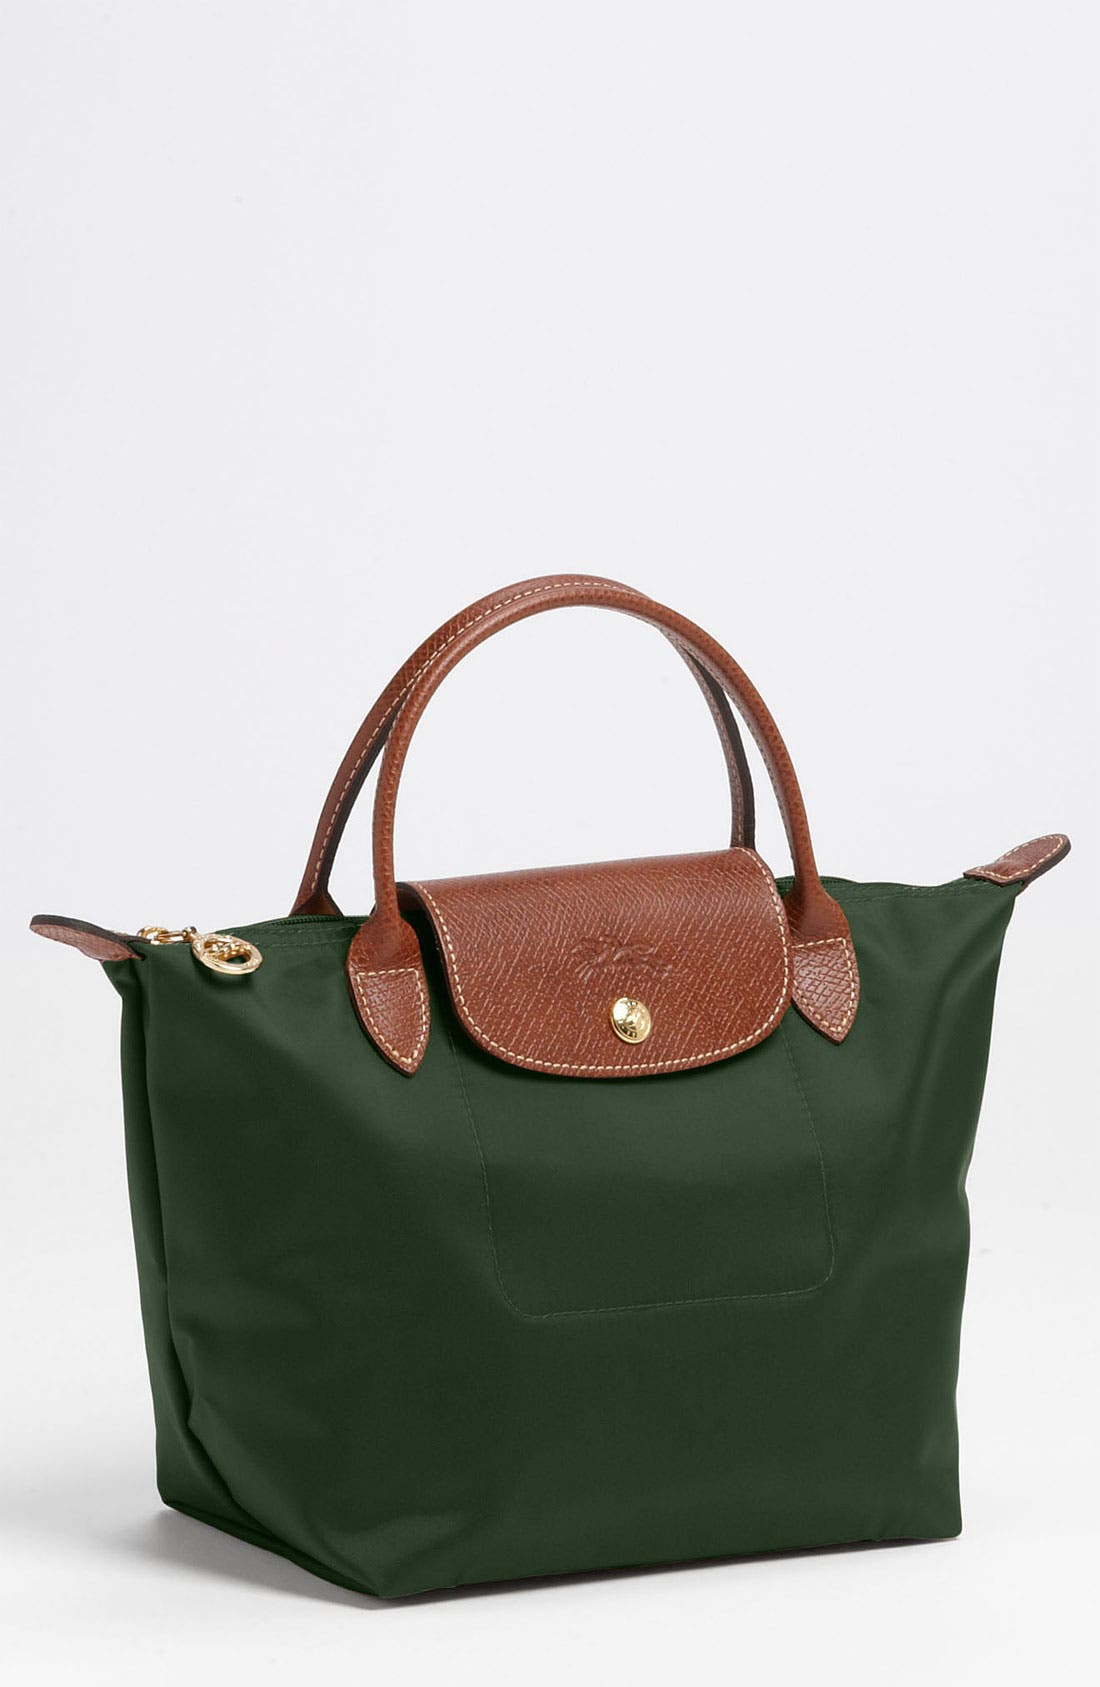 Alternate Image 1 Selected - Longchamp 'Le Pliage - Small' Tote